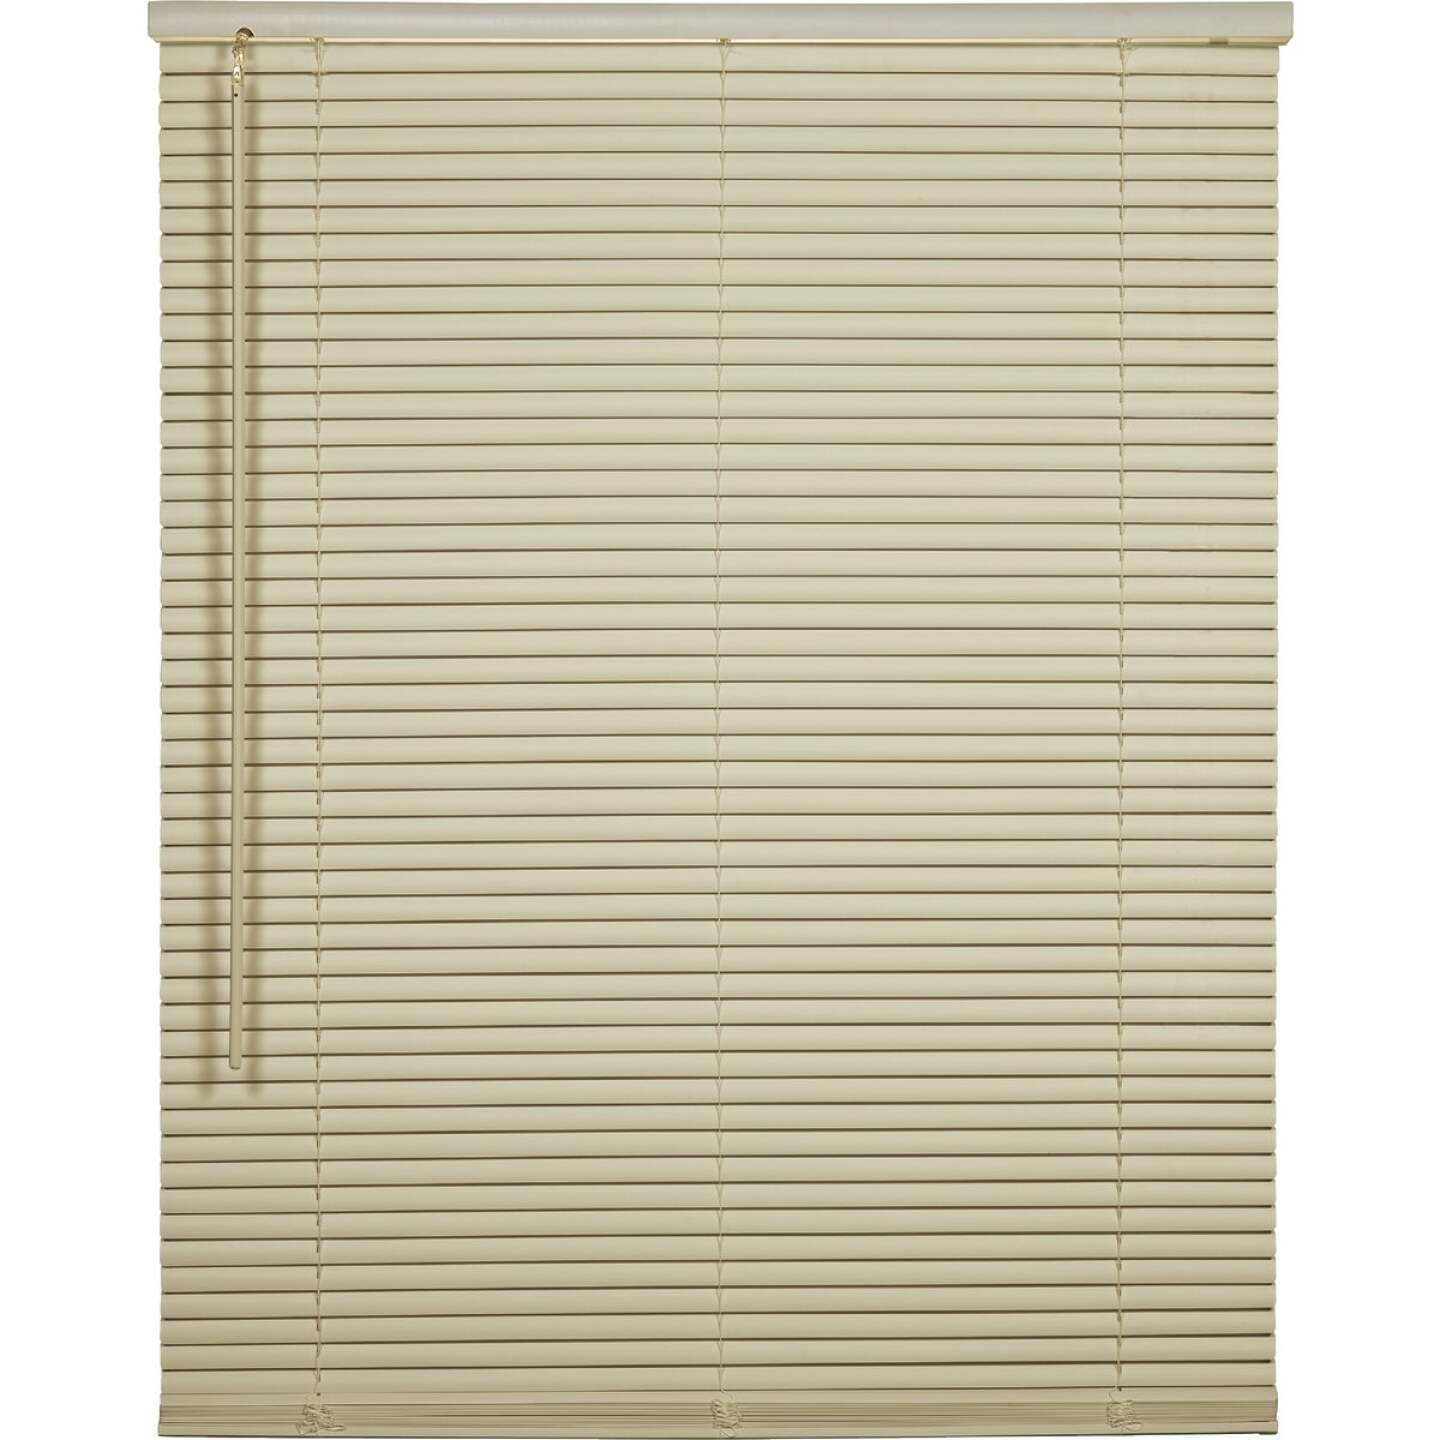 Home Impressions 72 In. x 64 In. x 1 In. Vanilla Vinyl Light Filtering Cordless Mini Blind Image 1